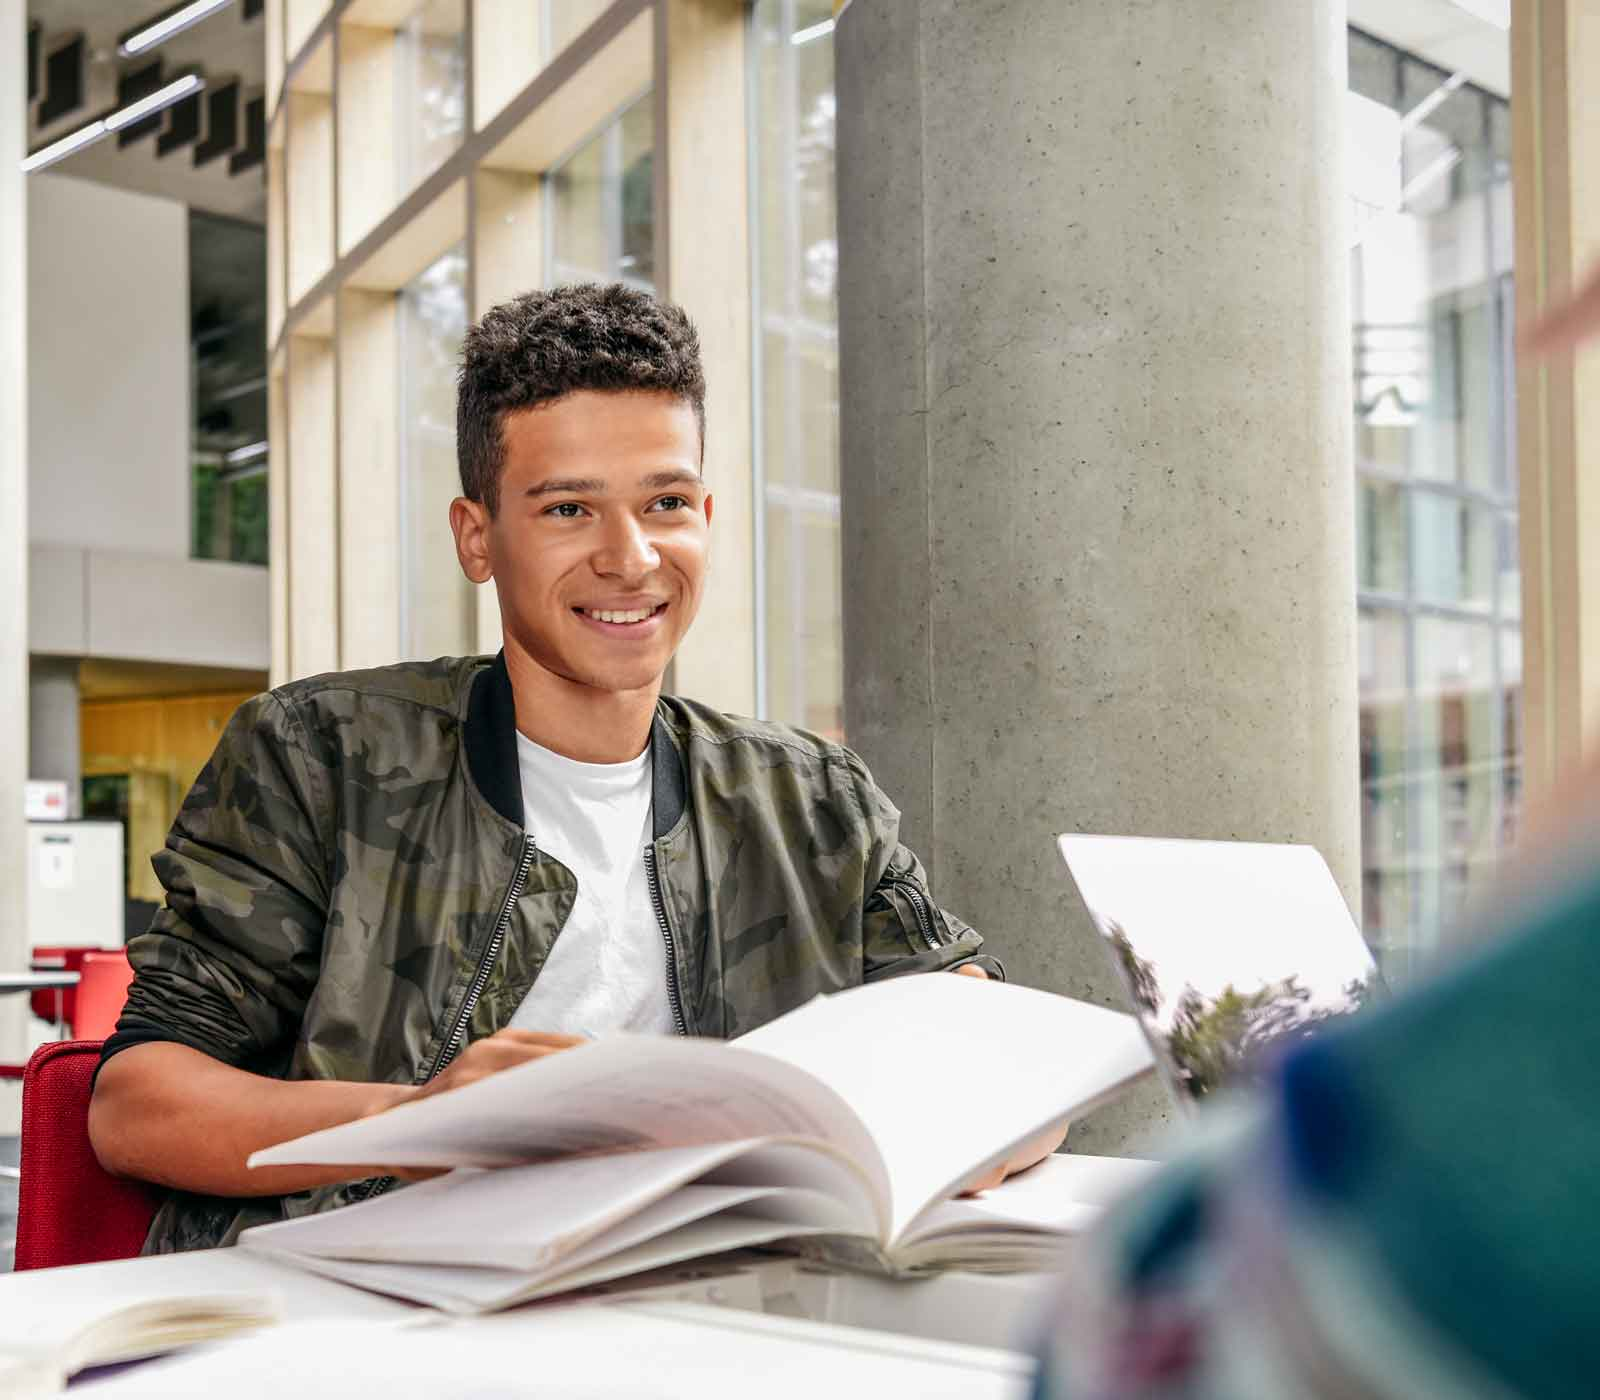 Transferring Universities: A Guide for International Students